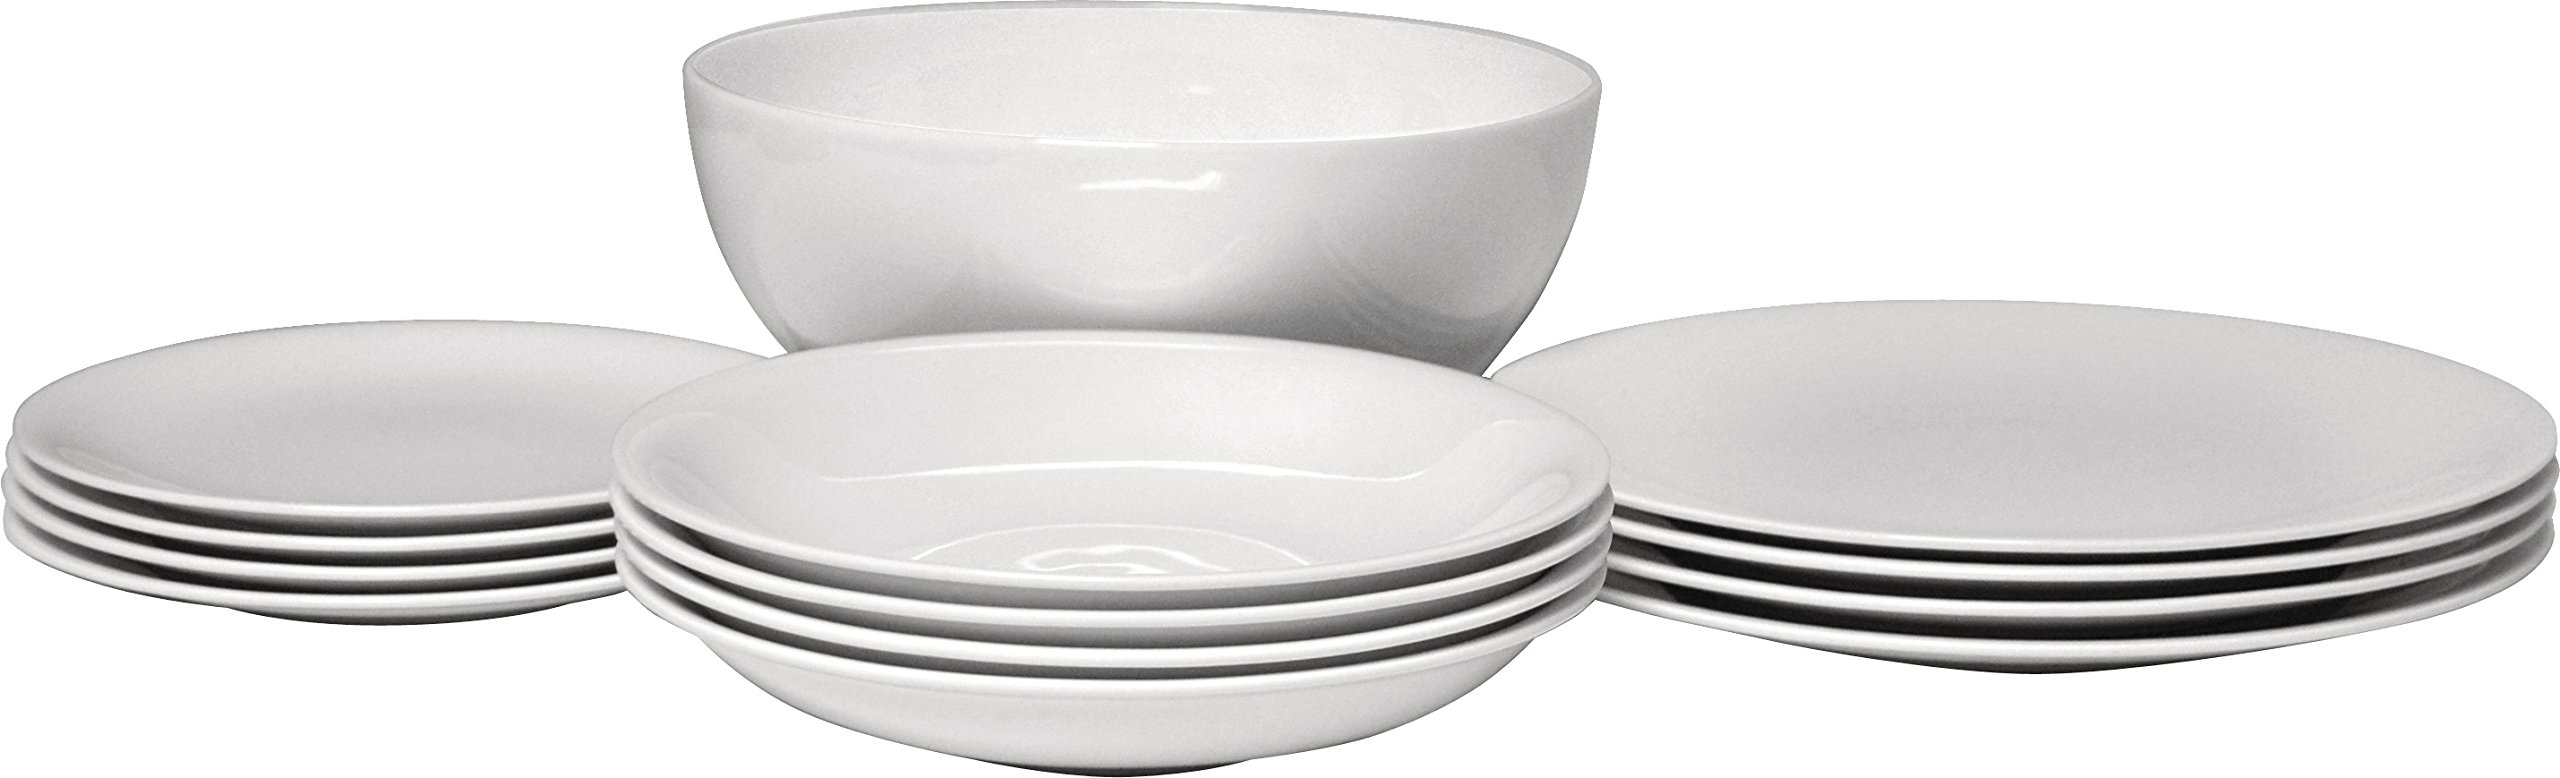 Alessi ''All-Time'' Table Set Composed of Four Dining/Side Plates, Soup Bowls, One Salad Serving Bowl in Bone China, White by Alessi